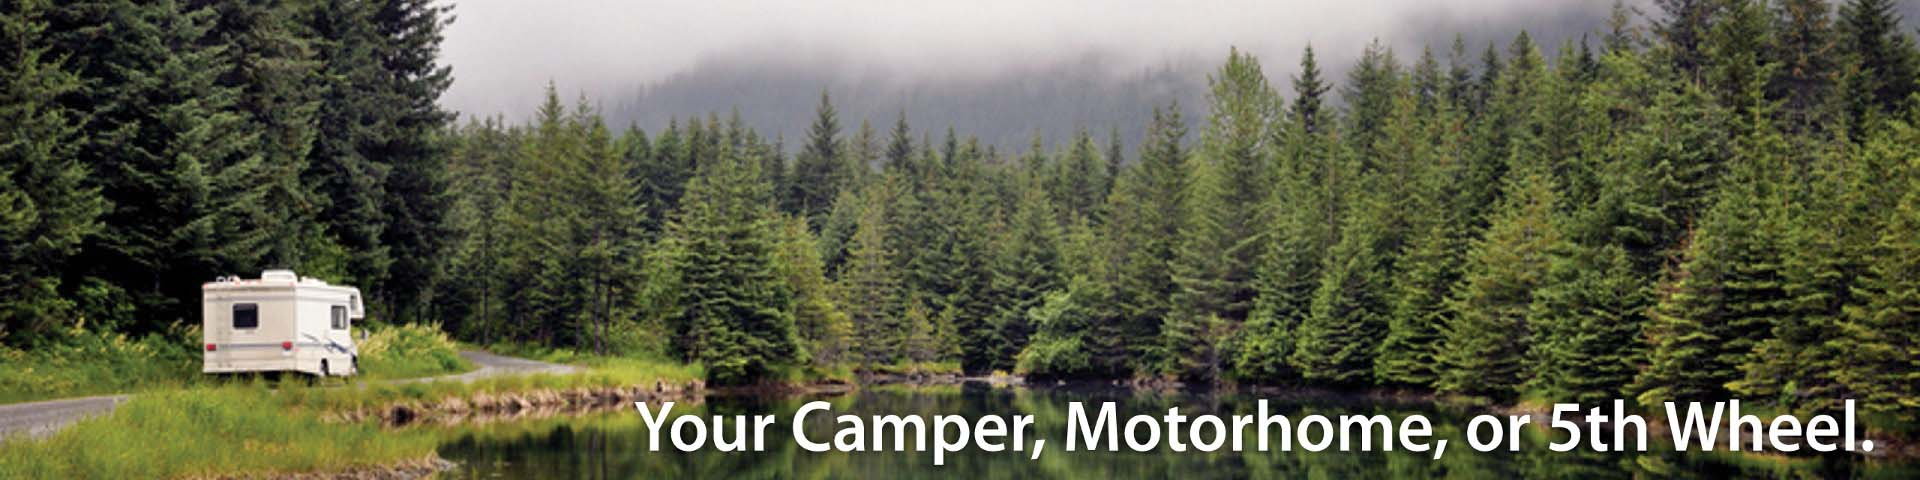 On your camper or RV.